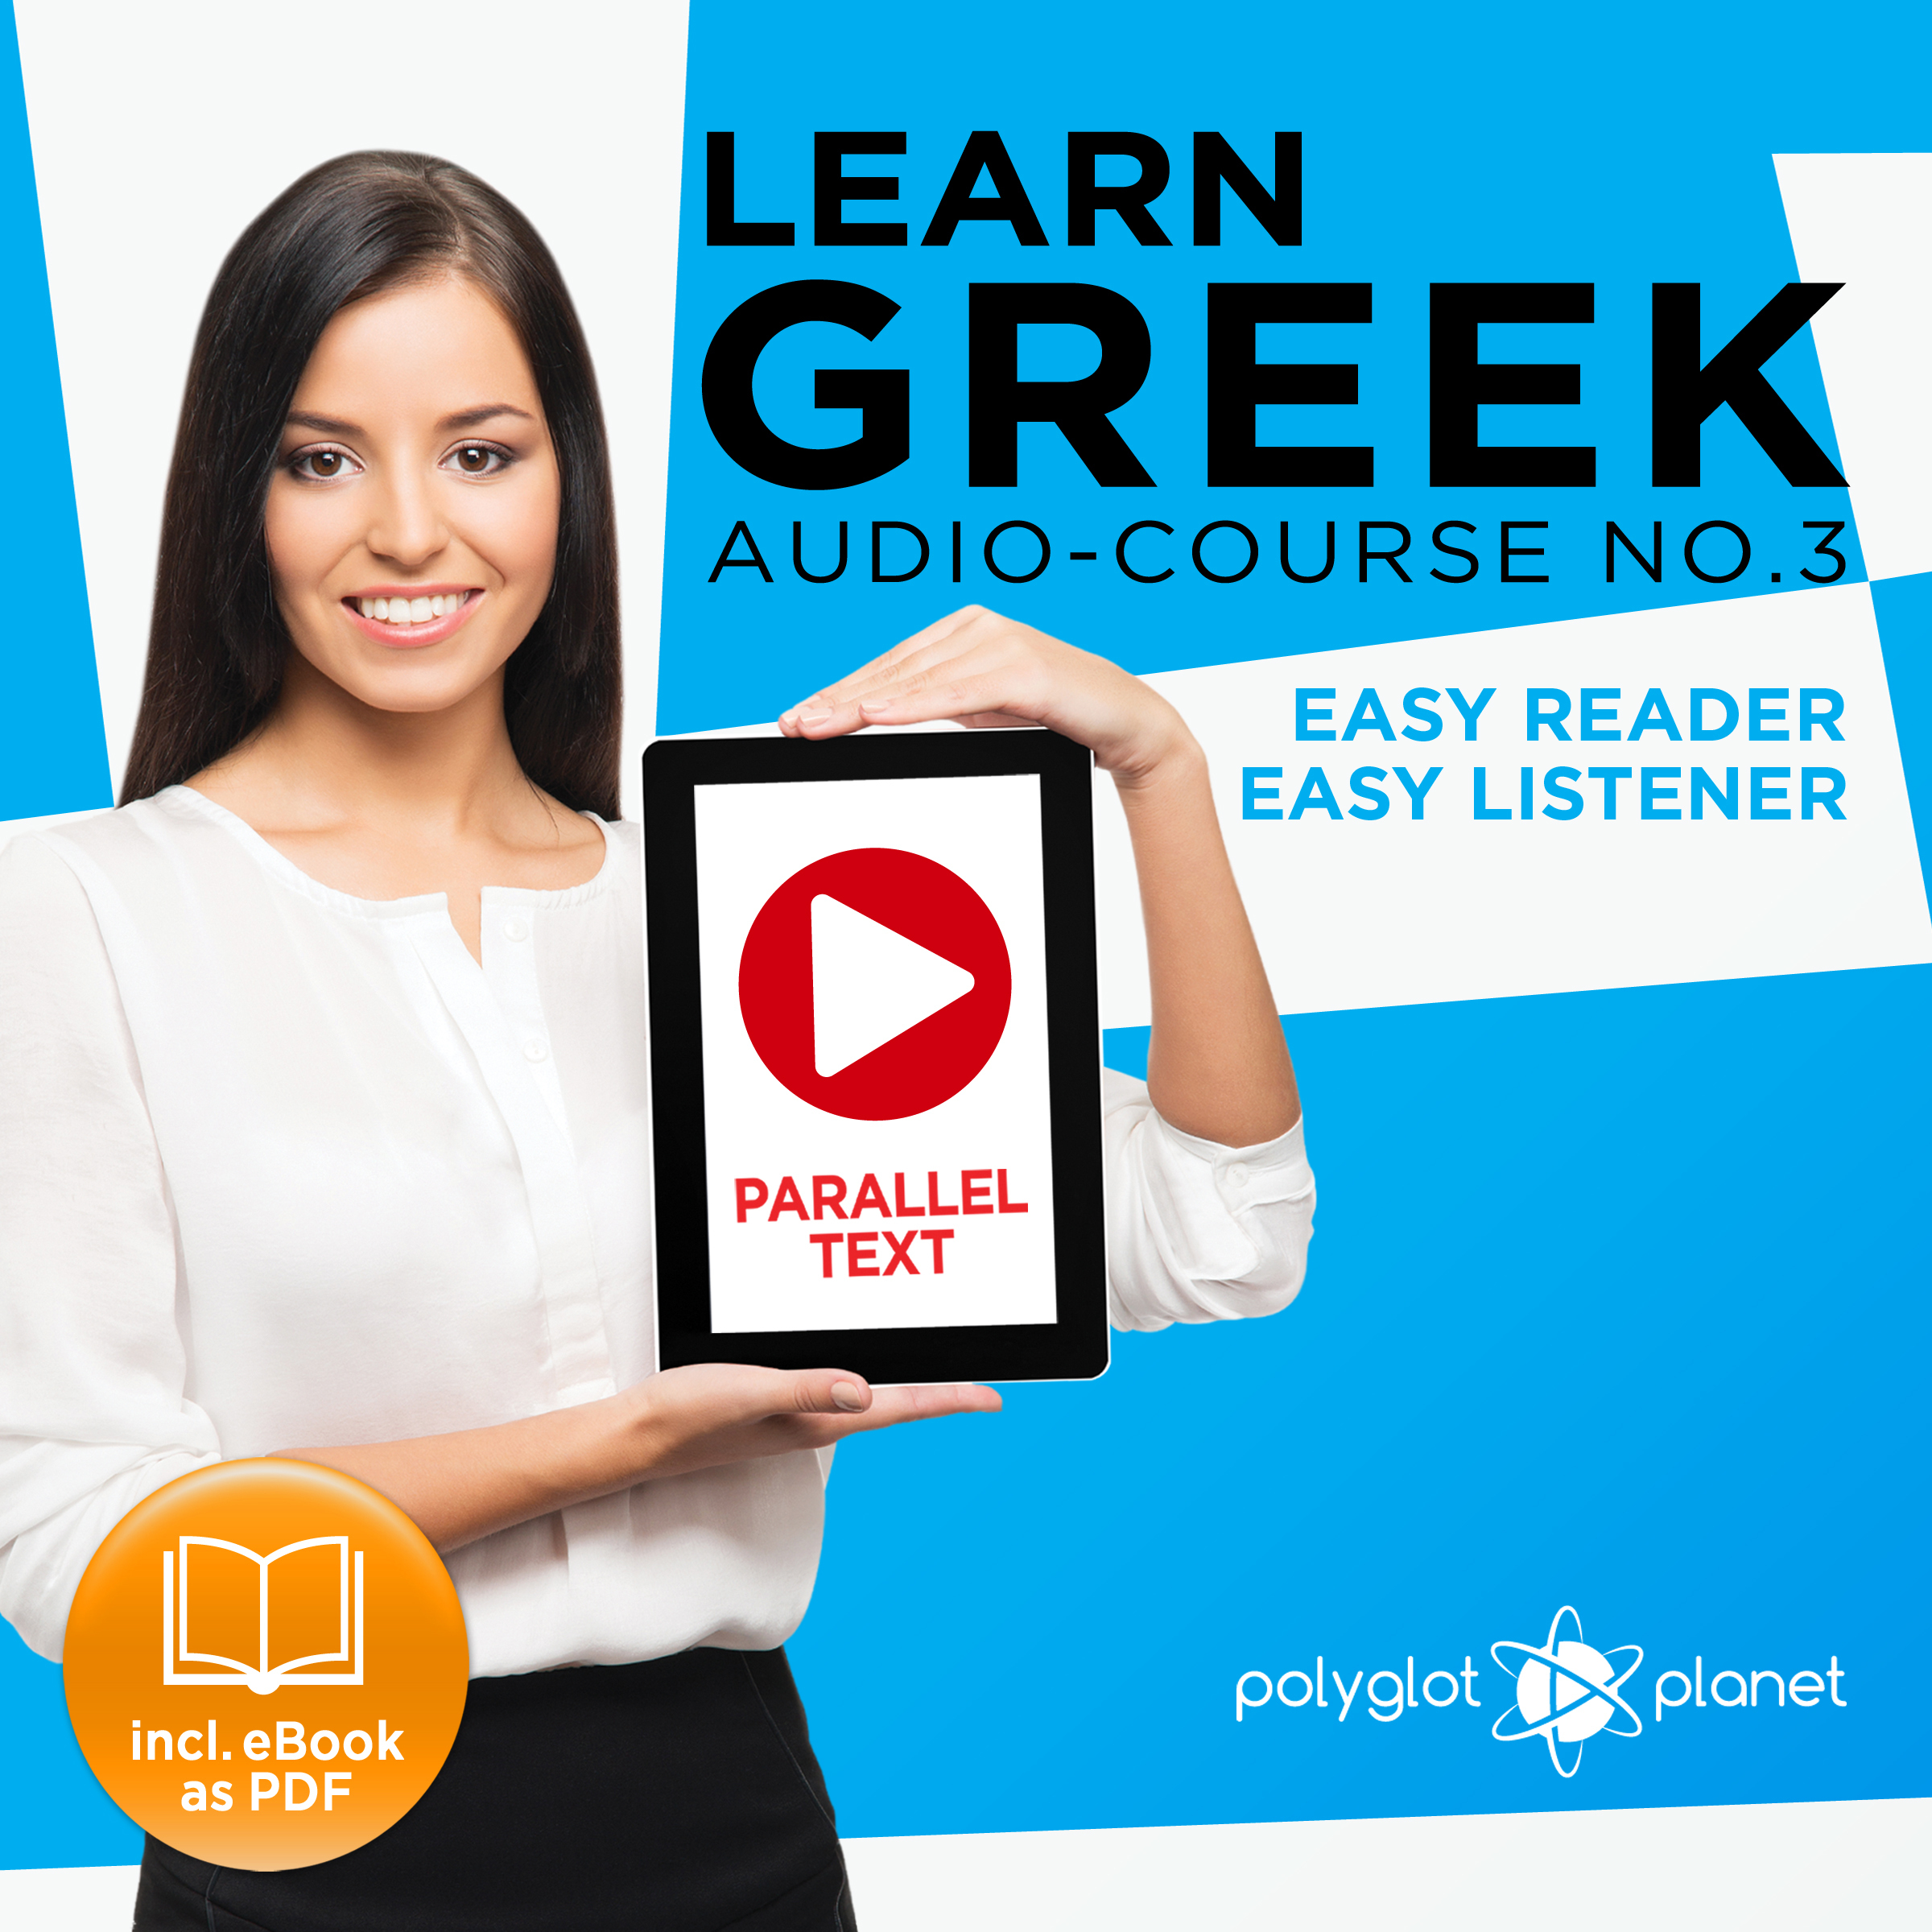 Printable Learn Greek - Easy Reader - Easy Listener - Parallel Text - Learn Greek Audio Course No. 3 - The Greek Easy Reader - Easy Audio Learning Course Audiobook Cover Art